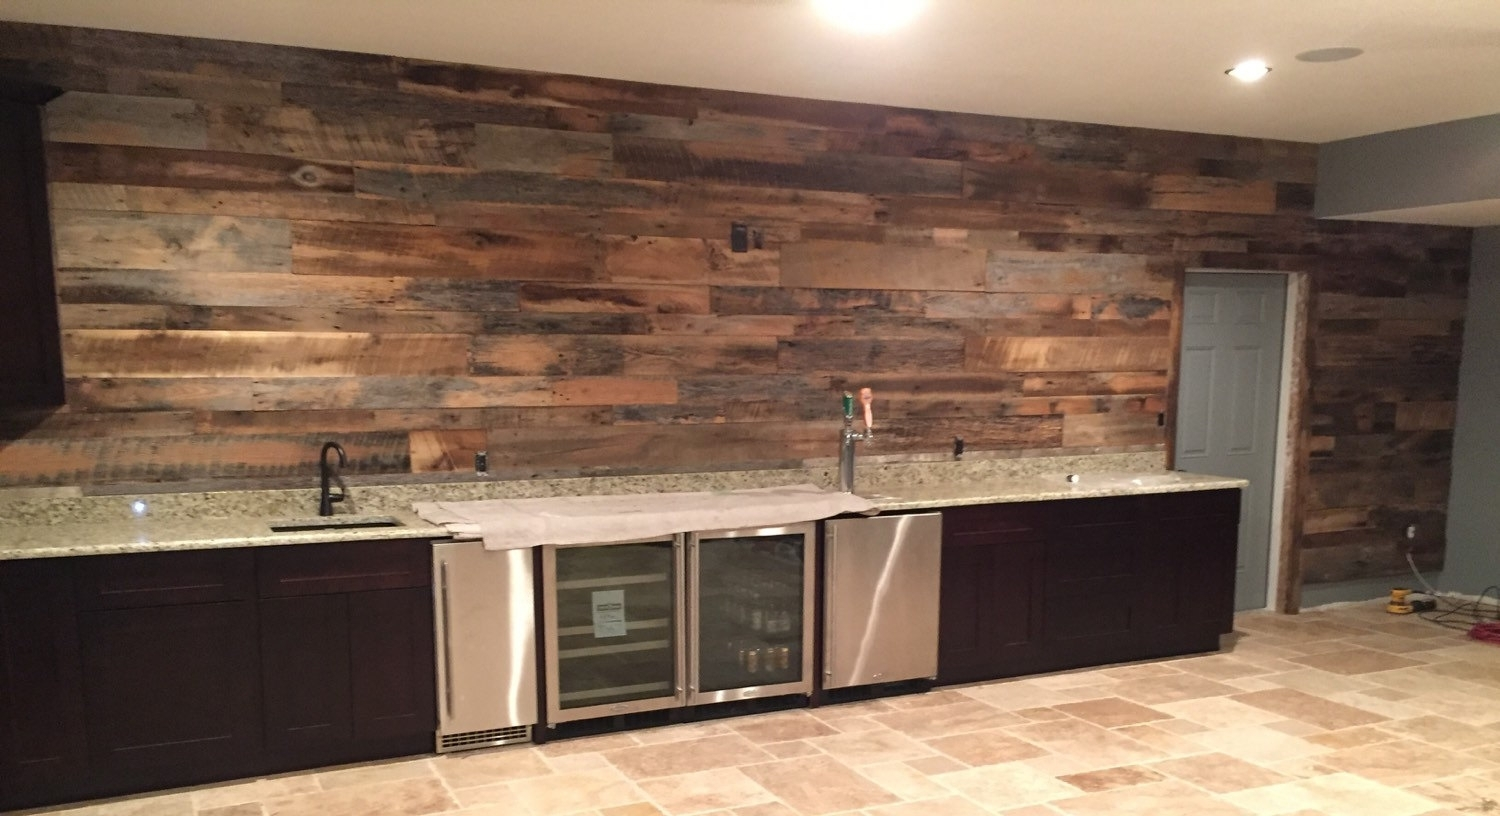 Reclaimed Wood Accent Wall — Cookwithalocal Home And Space Decor With Latest Reclaimed Wood Wall Accents (View 6 of 15)